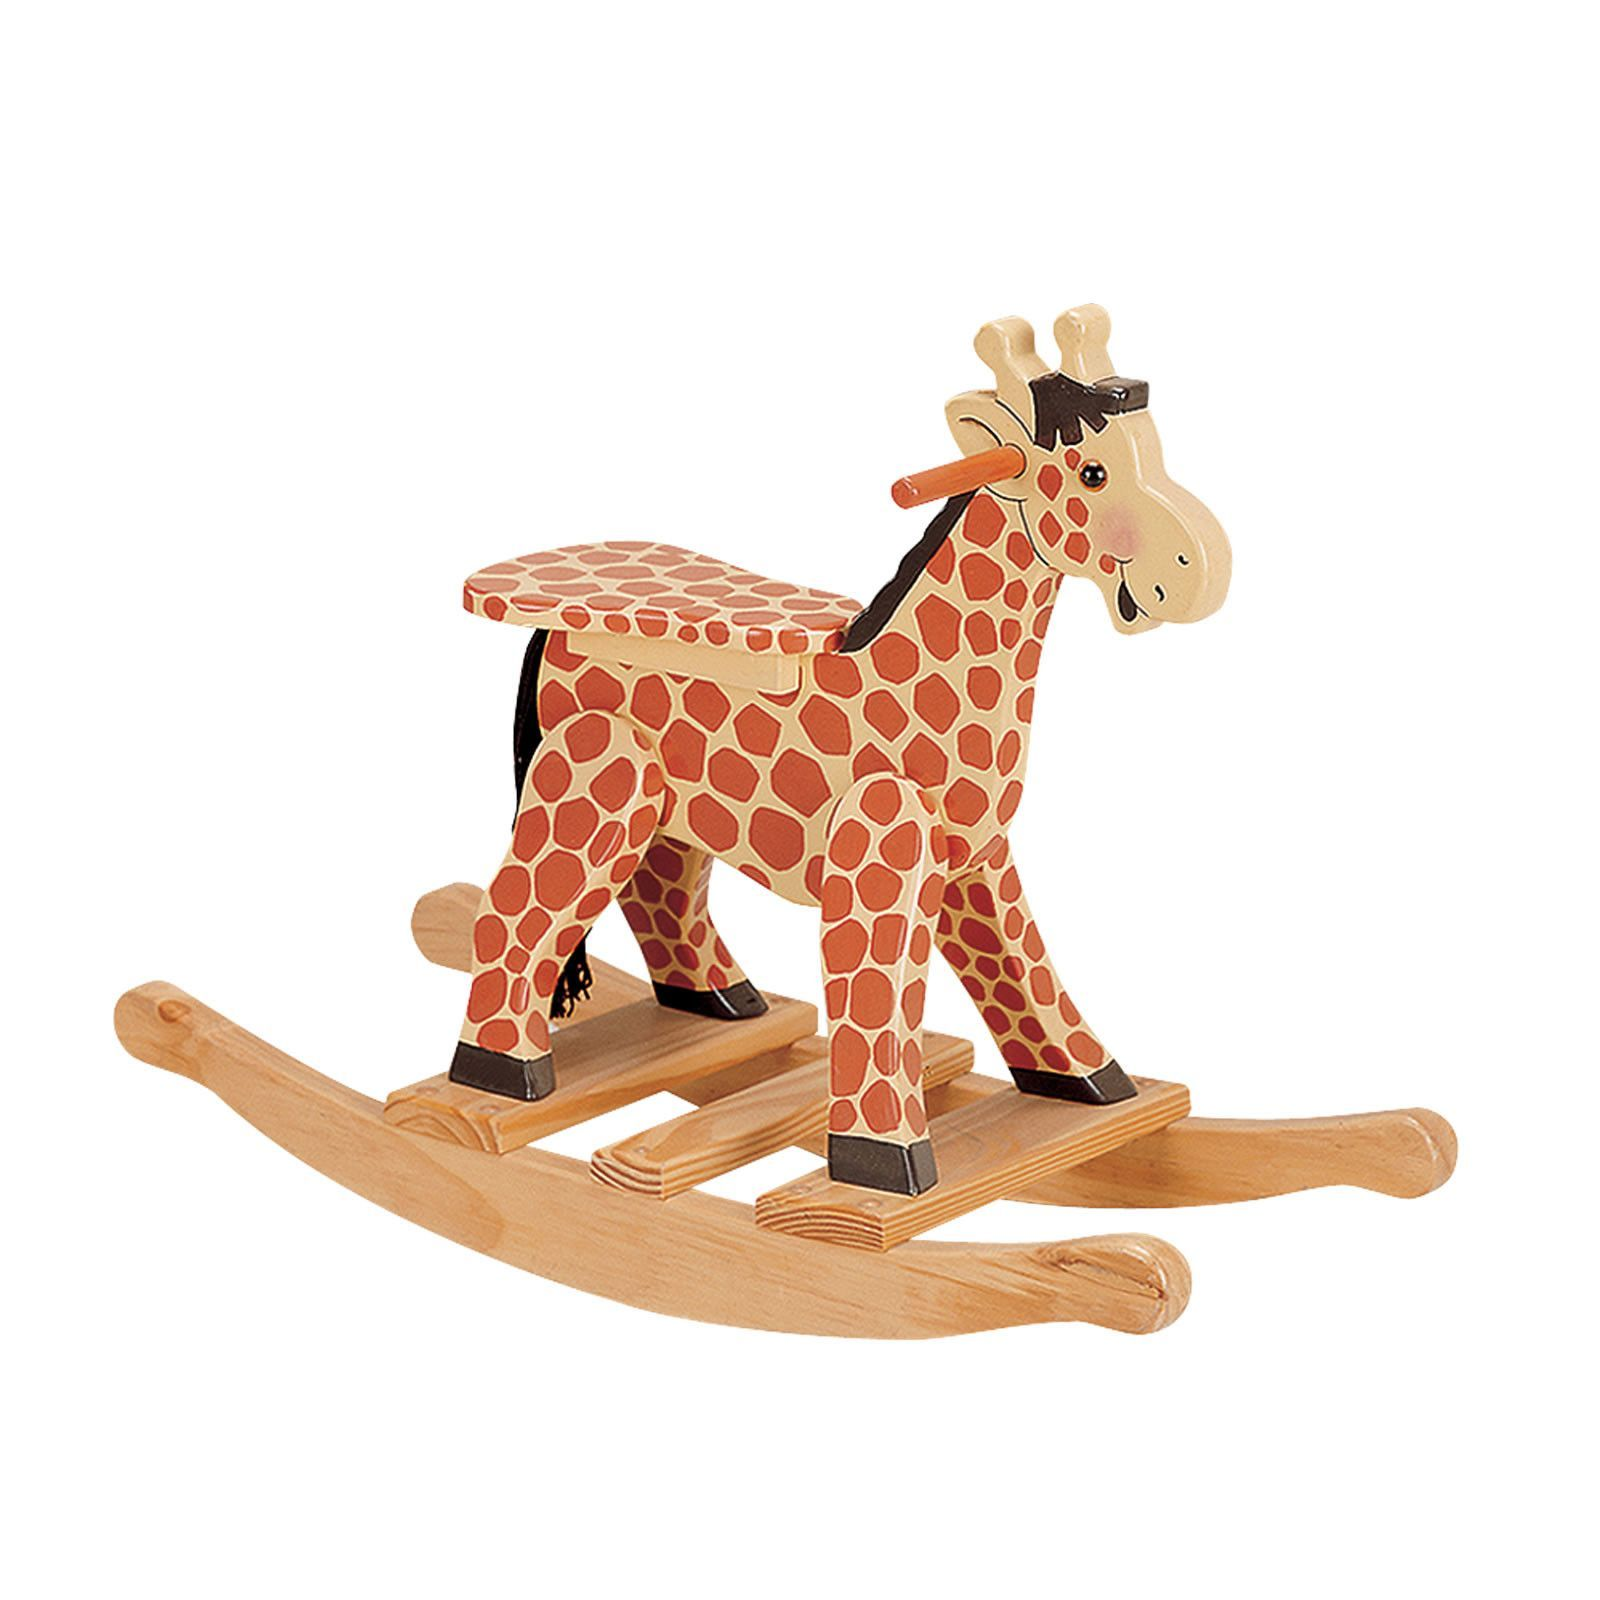 Safari Giraffe Rocking Horse Kids Rocking Horse Kids Rocking Chair Rocking Toy